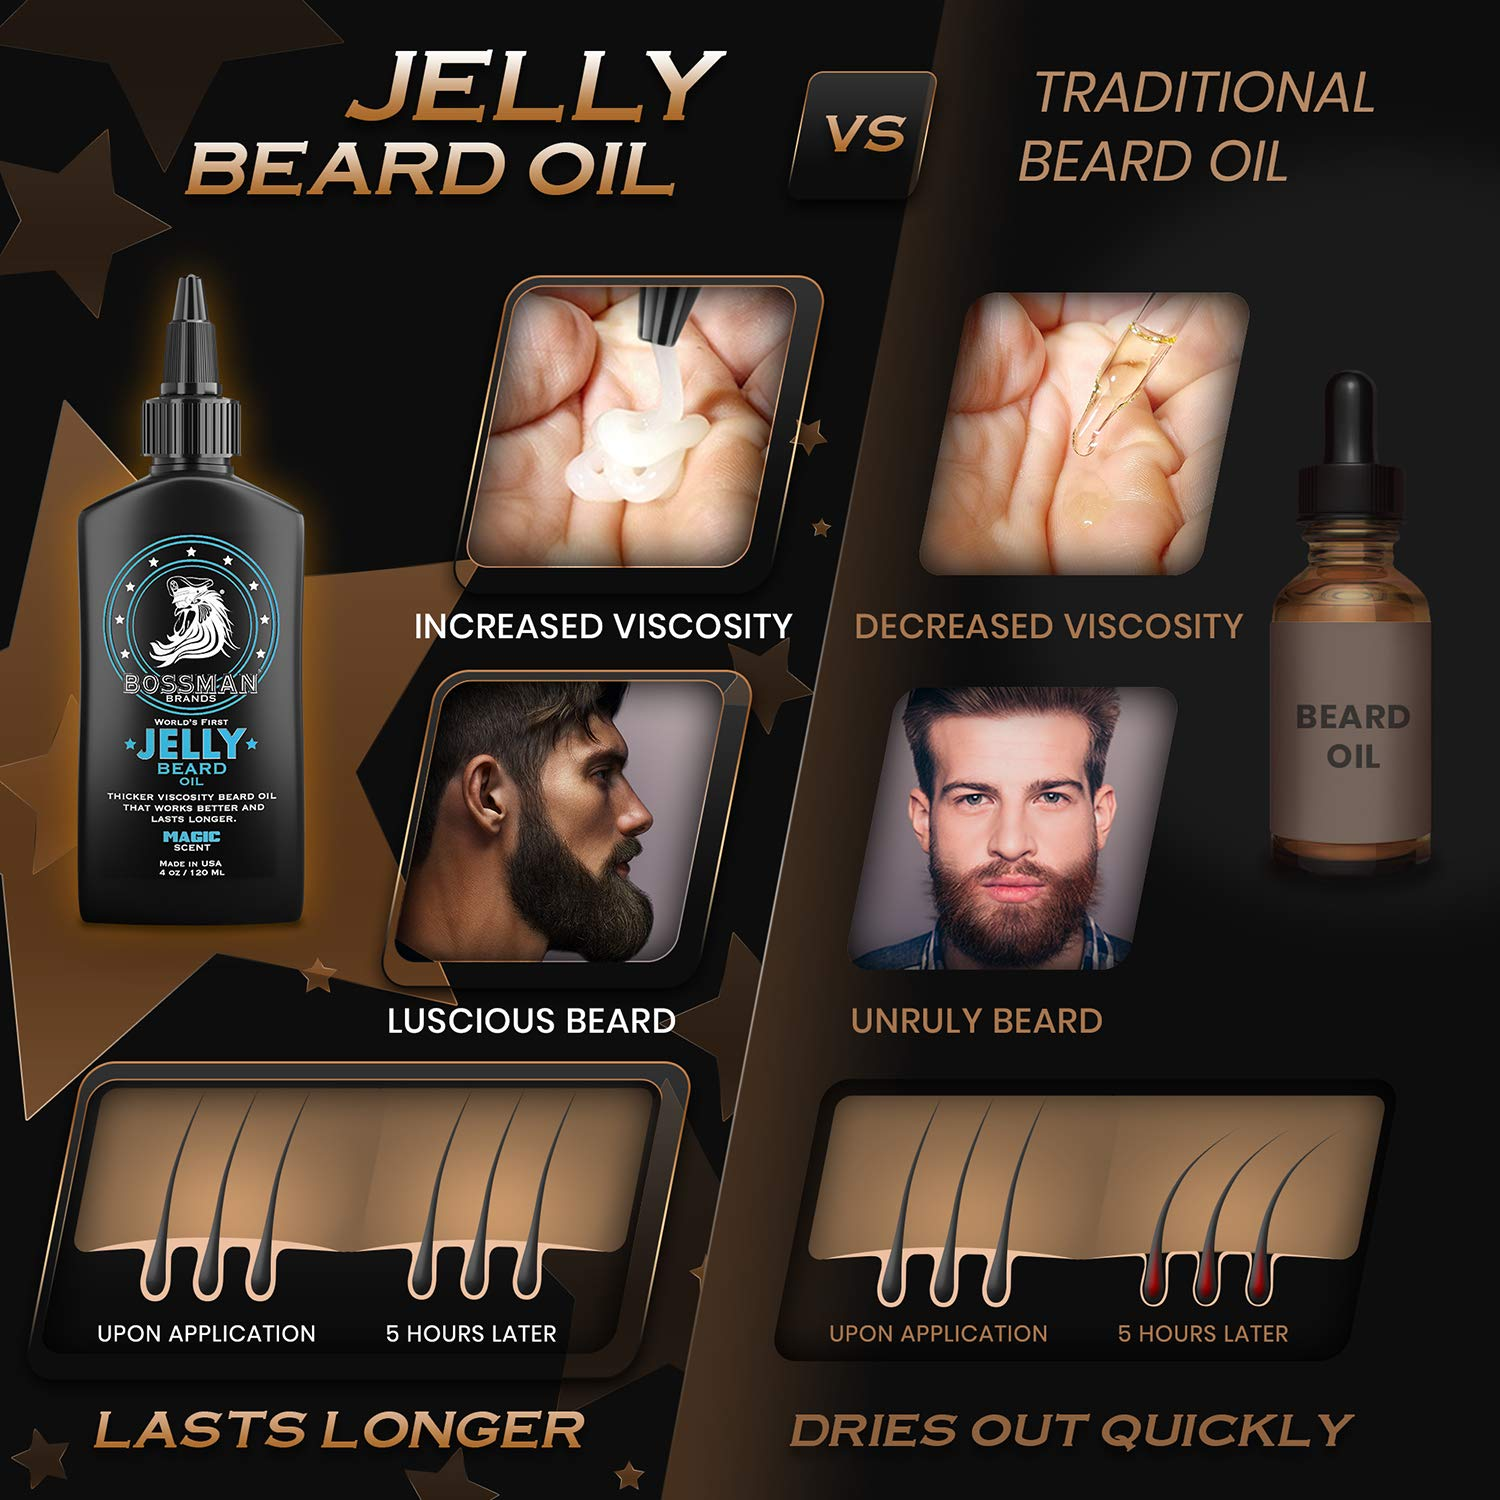 Amazon Com Bossman Beard Oil 4oz Thicker Consistency Jelly Made In Usa Longer Lasting Bigger Bottle Natural Ingredients Non Greasy Magic Scent Beauty